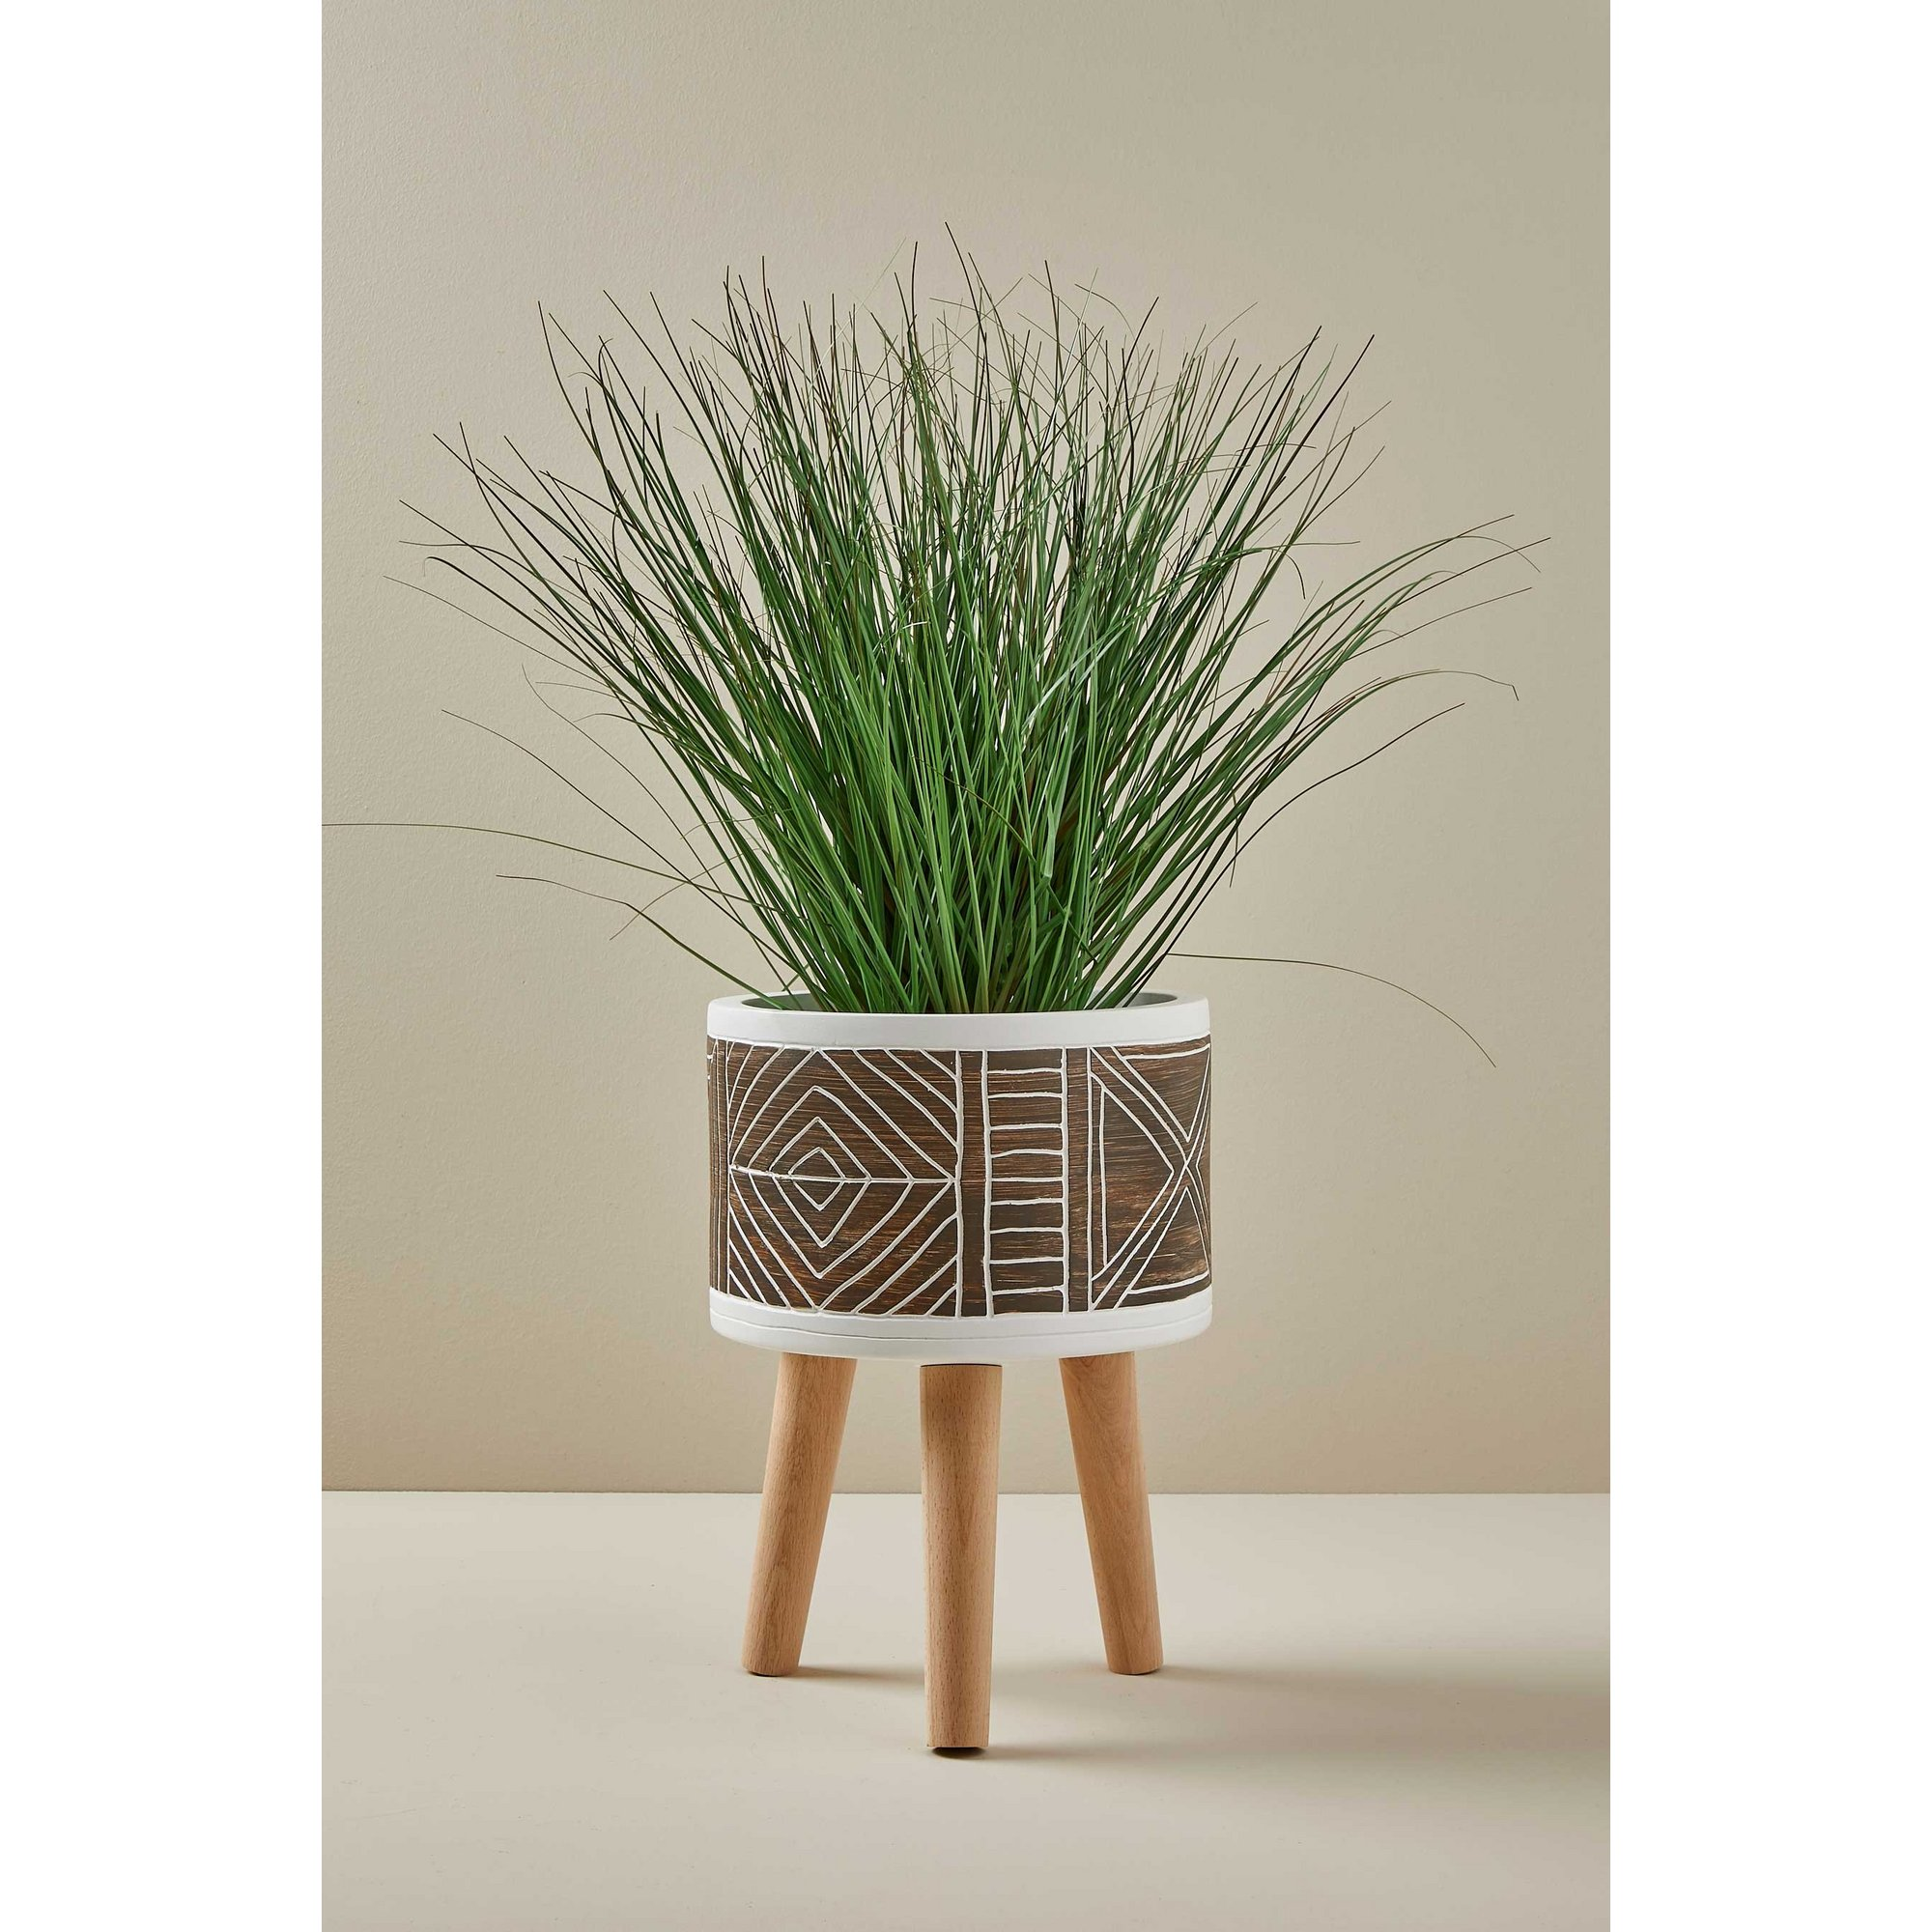 Image of Aztec Natural Hand Painted Wood Leg Planter